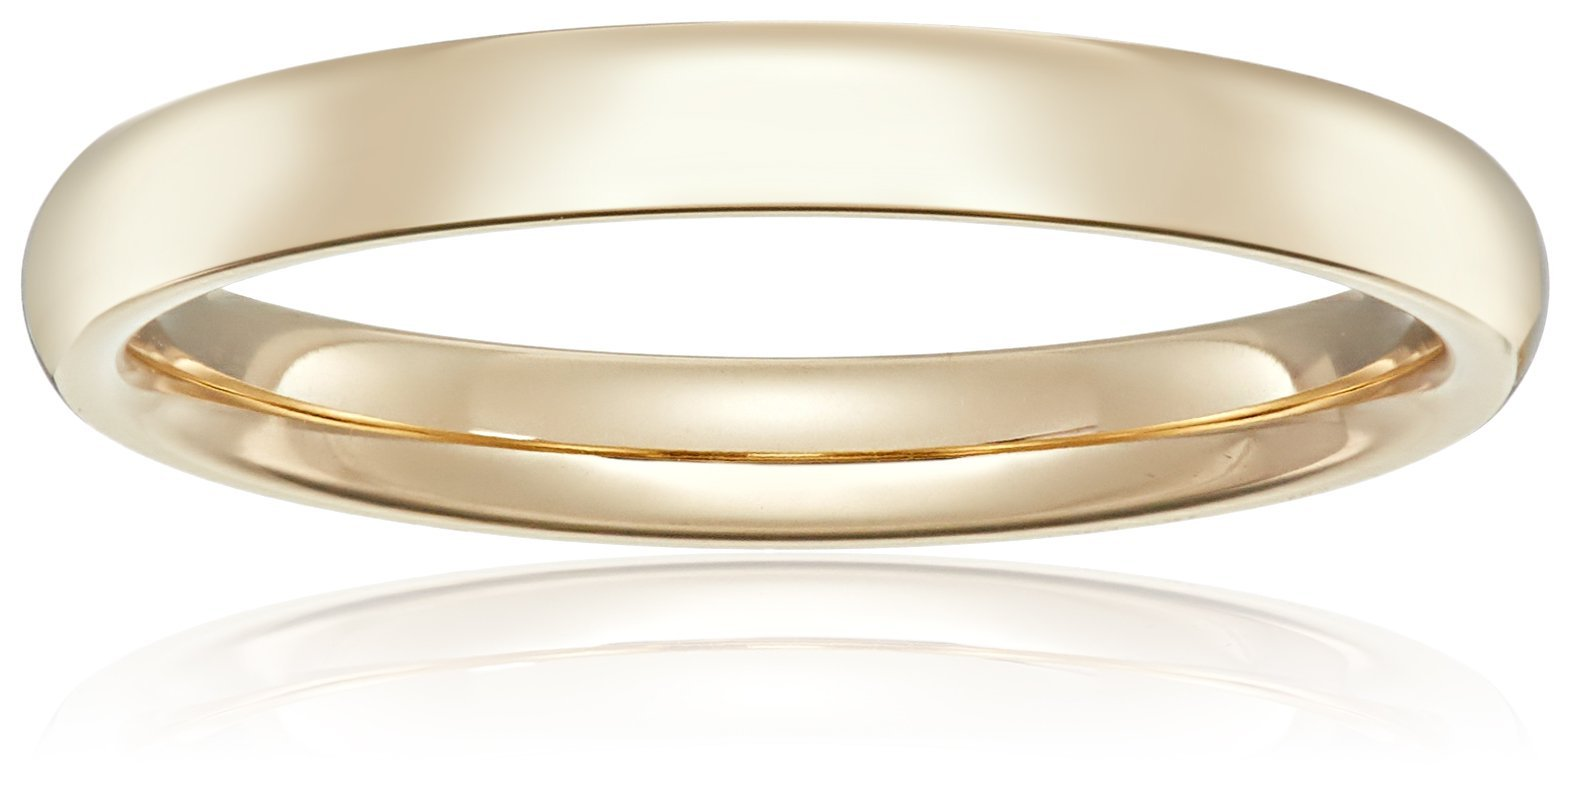 Standard Comfort-Fit 14K Yellow Gold Band, 5mm, Size 8